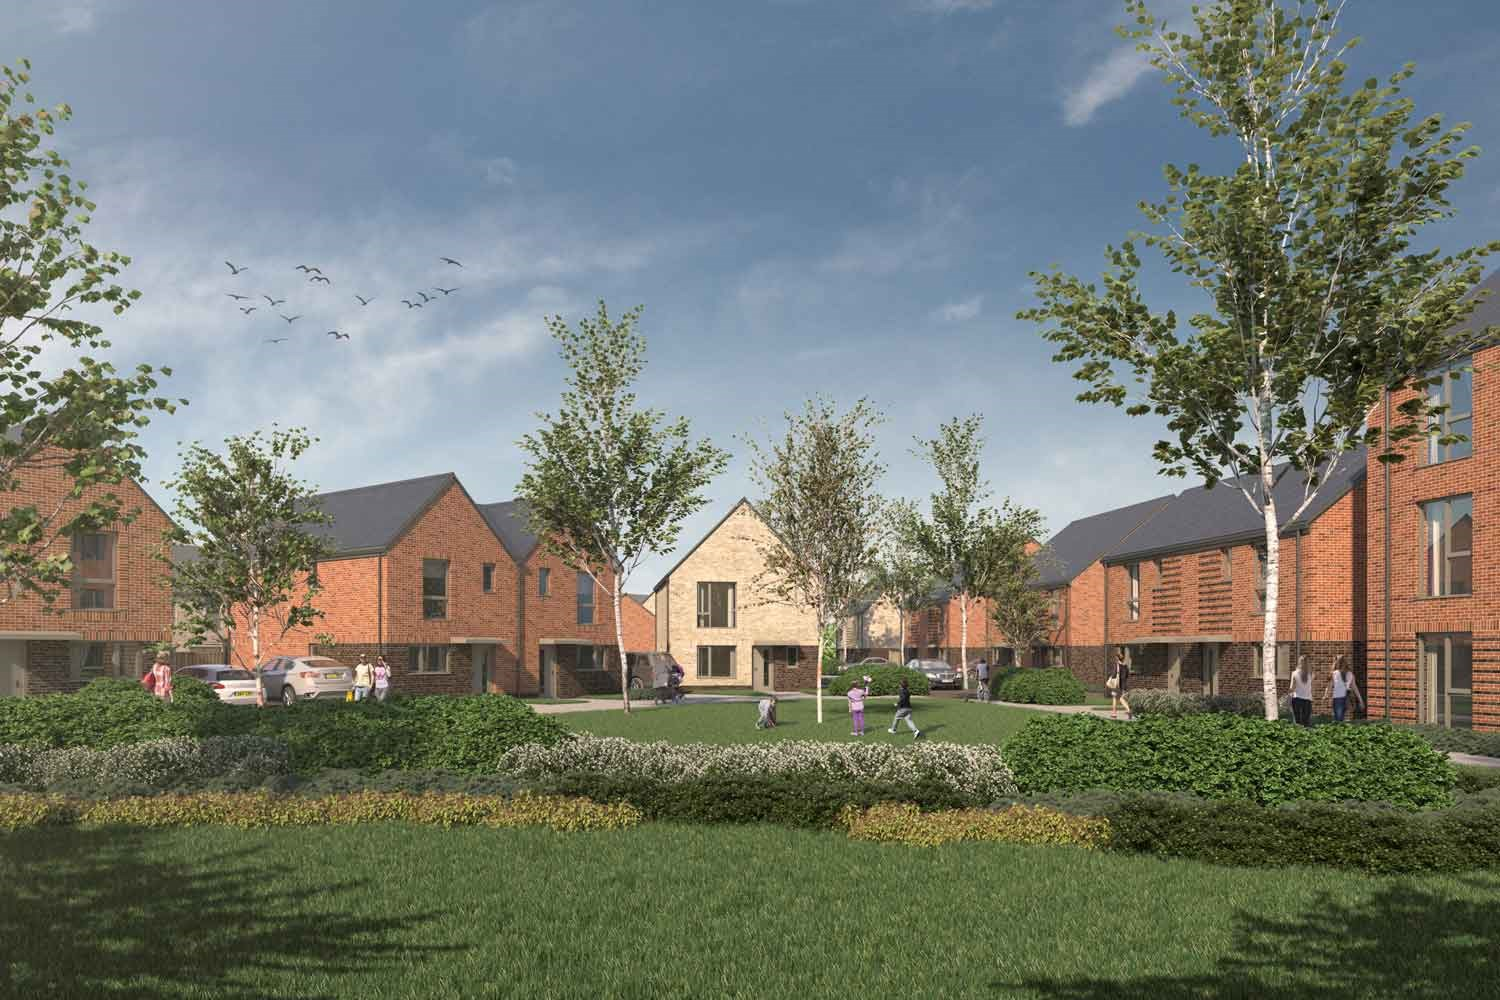 New Homes for Lee-on-Solent